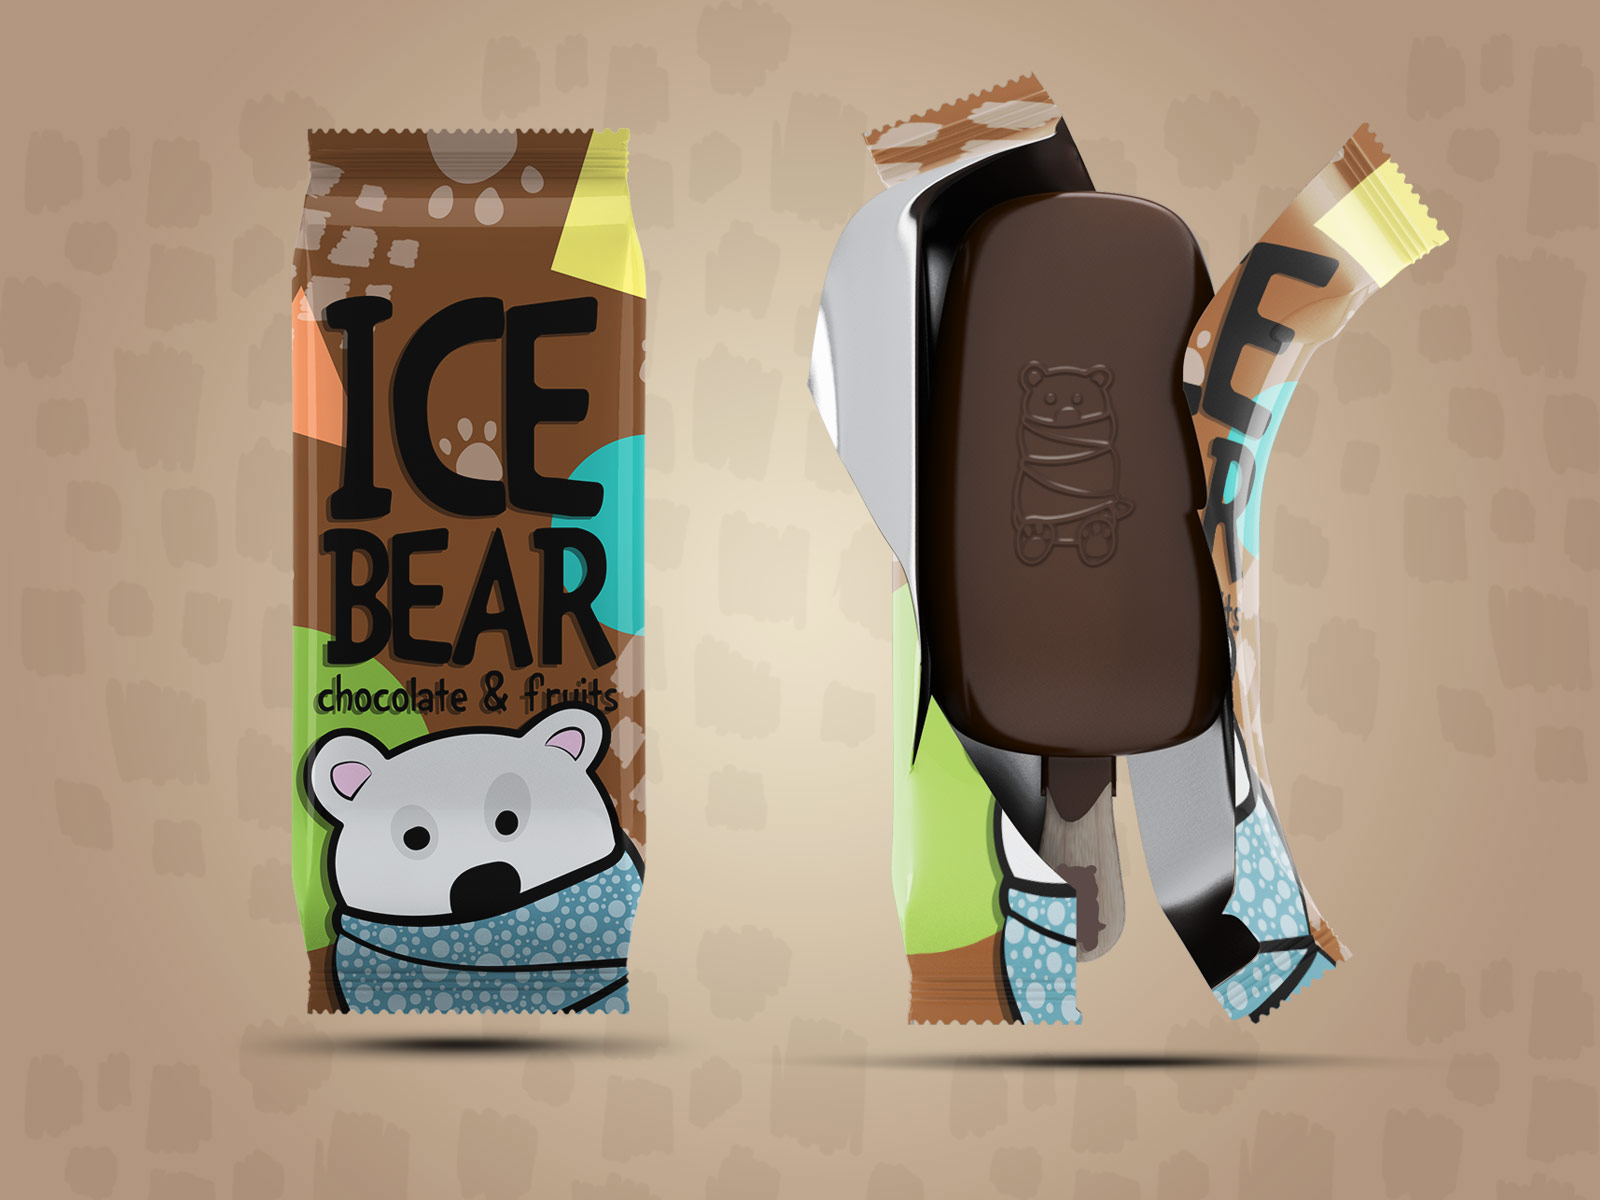 Zeljka Mitrovic - Ice Bear Ice Cream3.jpg